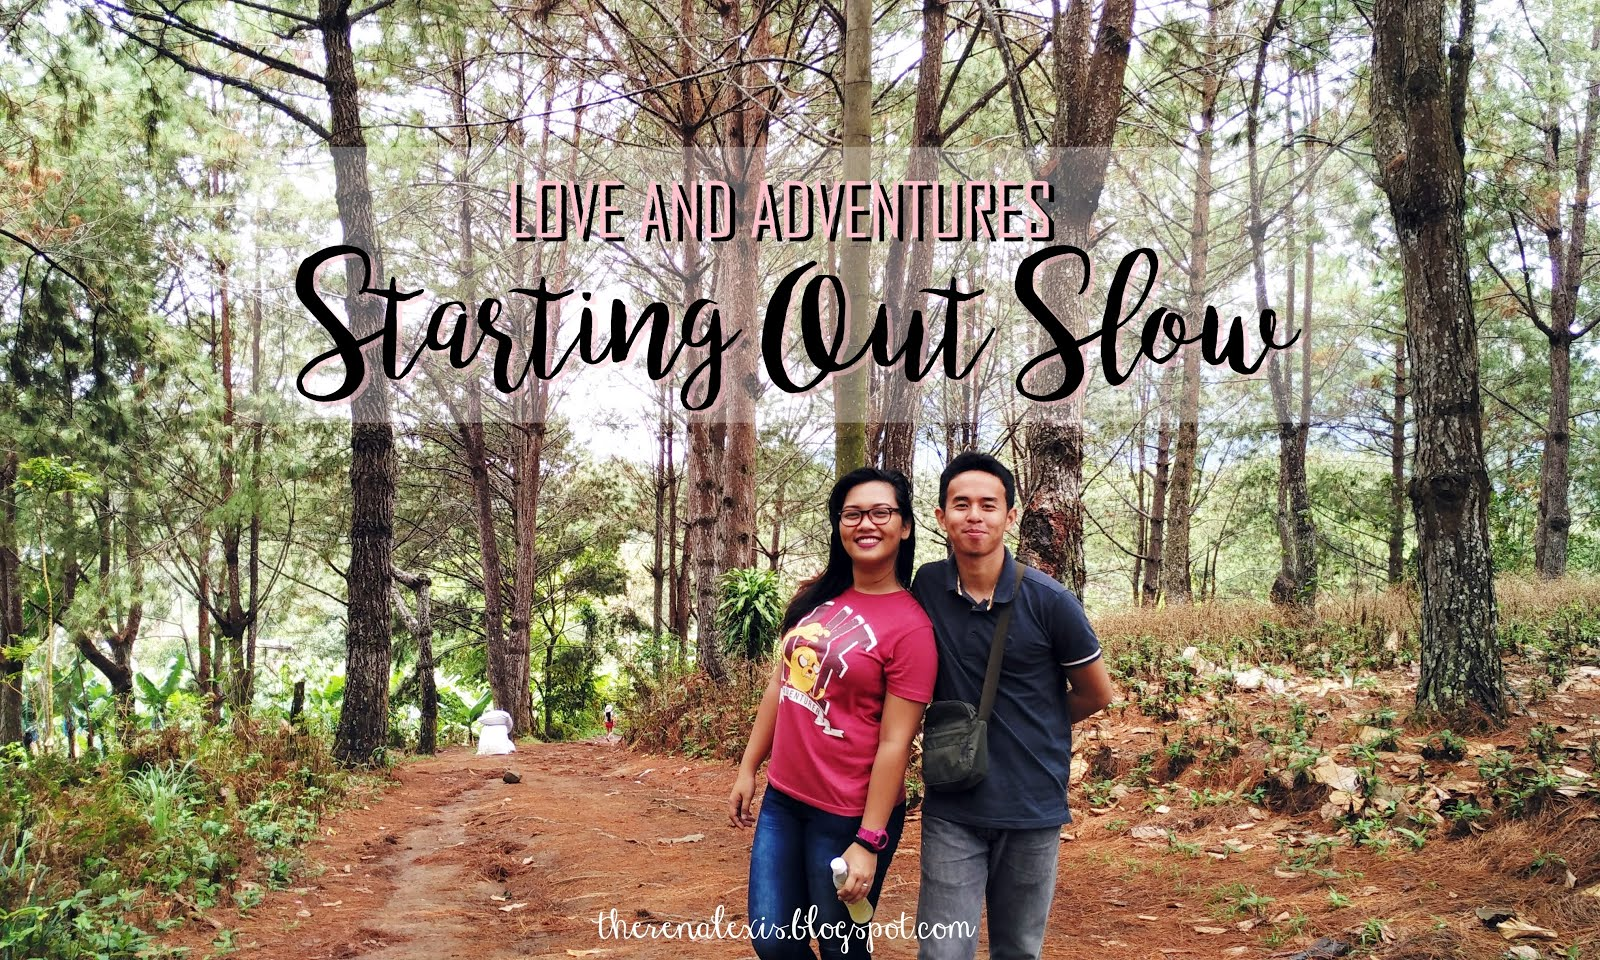 Read about the start of a love story that has been through a lot since 2014...